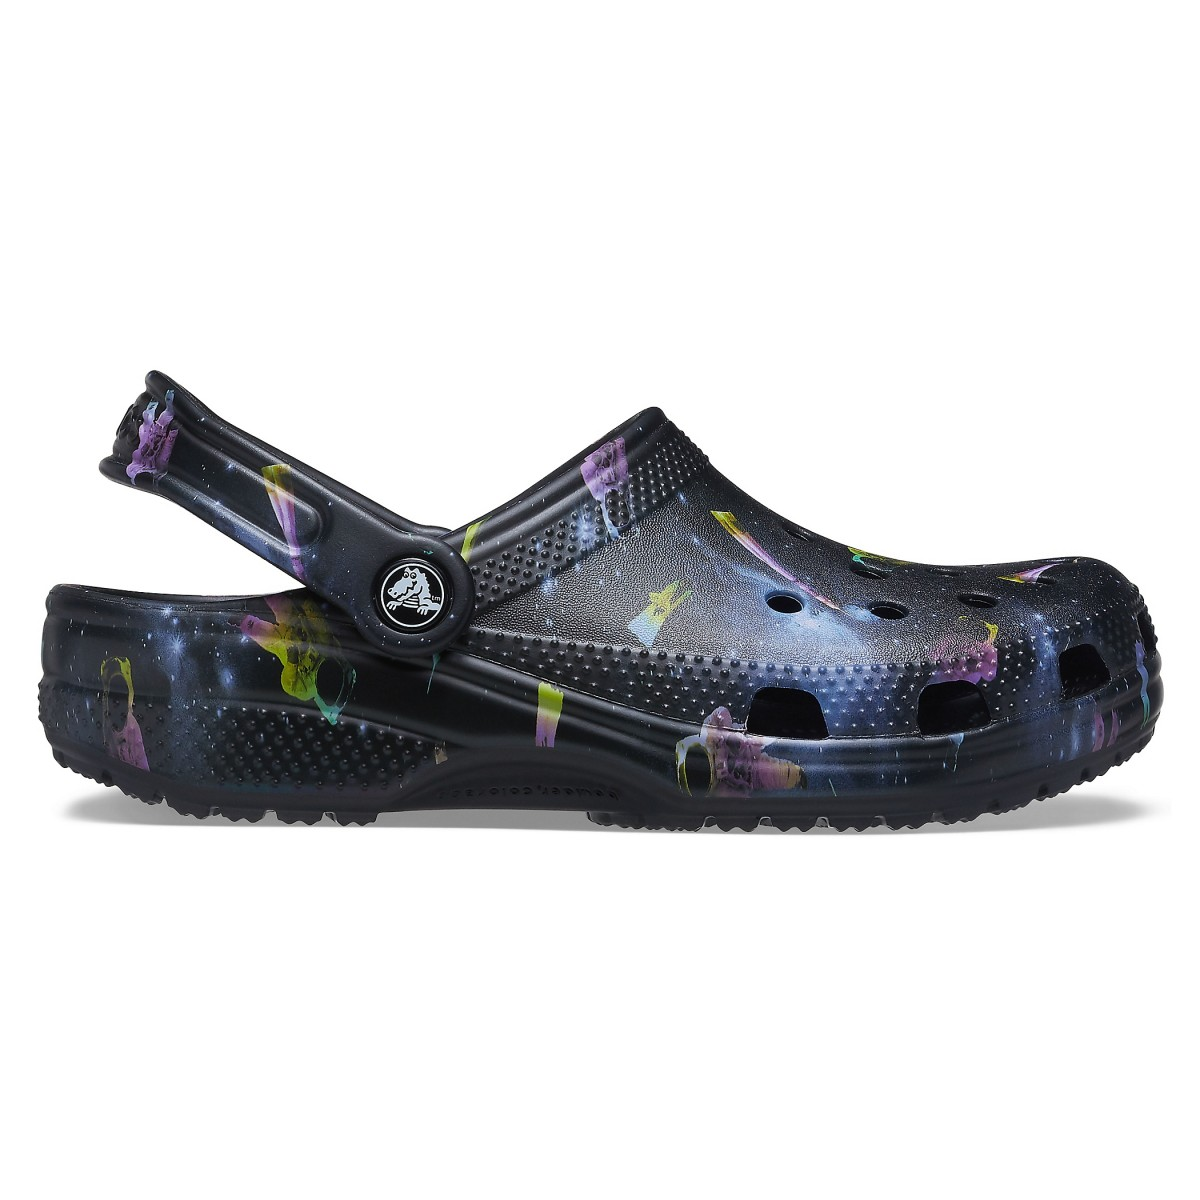 Saboți Adulti Unisex casual Crocs Classic Out of this World II Clog Negri -5